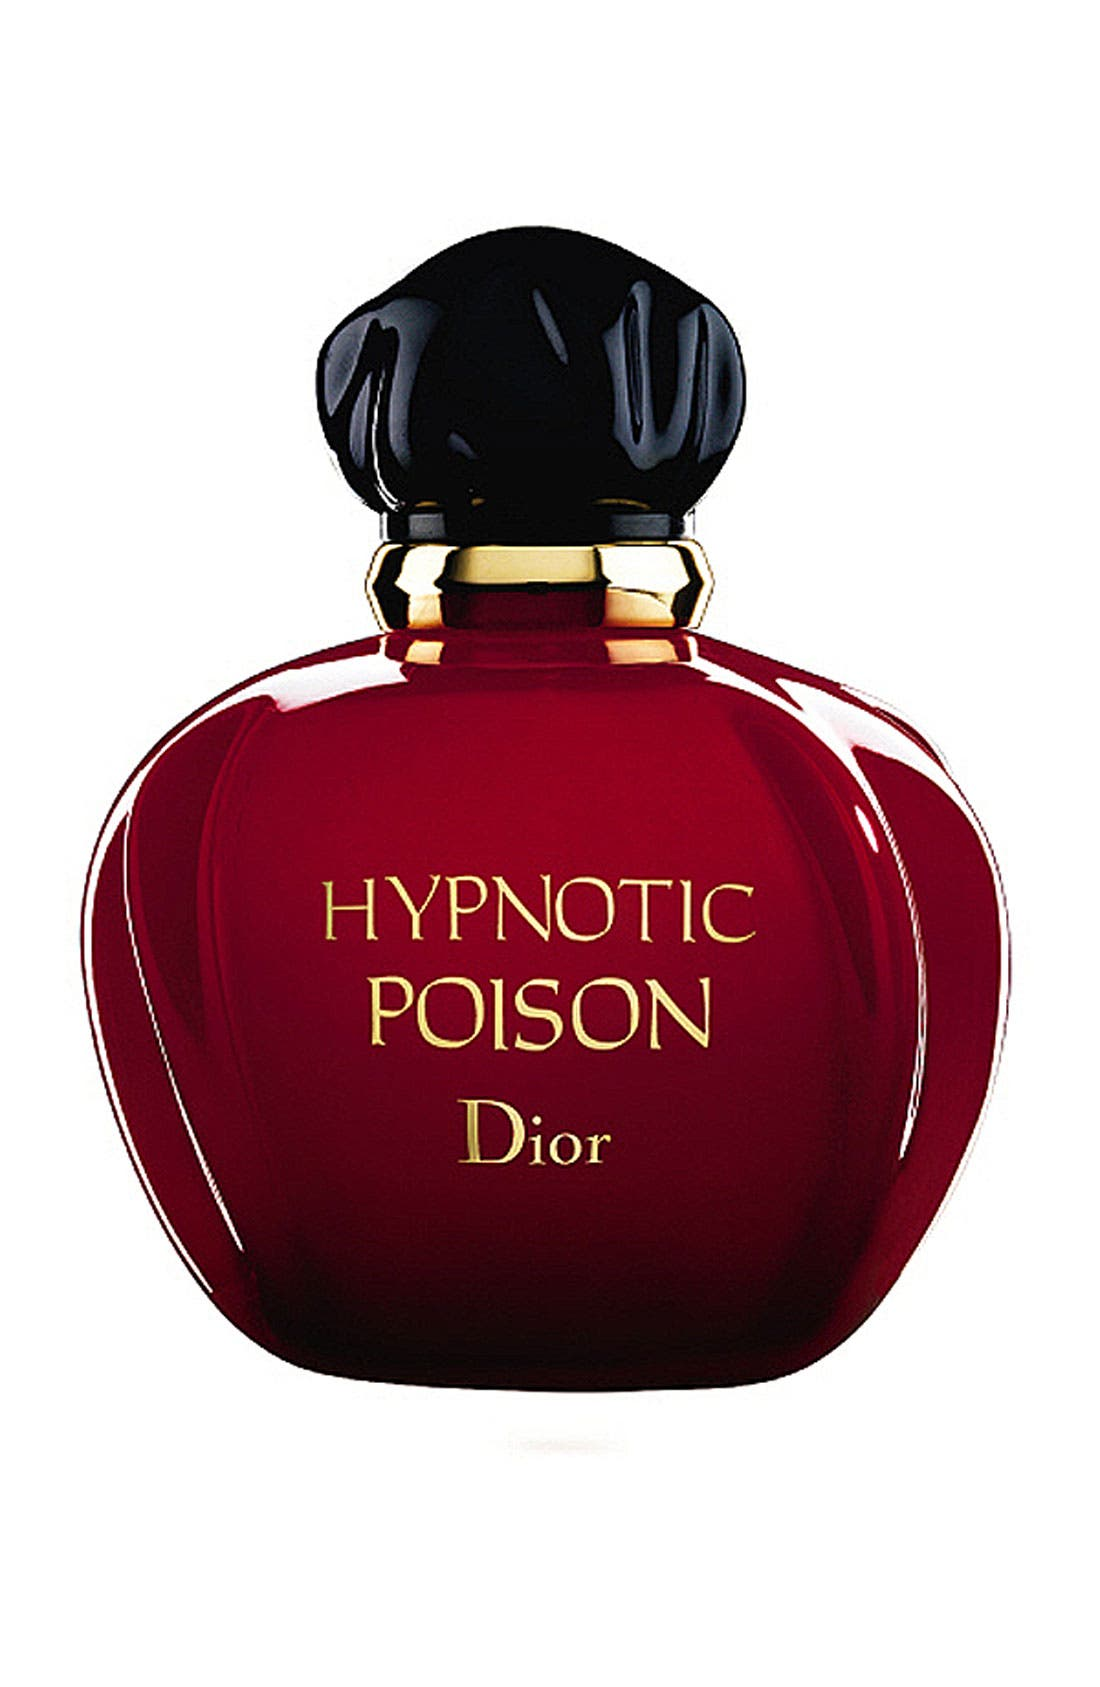 Hypnotic Poison Eau de Toilette,                             Main thumbnail 1, color,                             NO COLOR